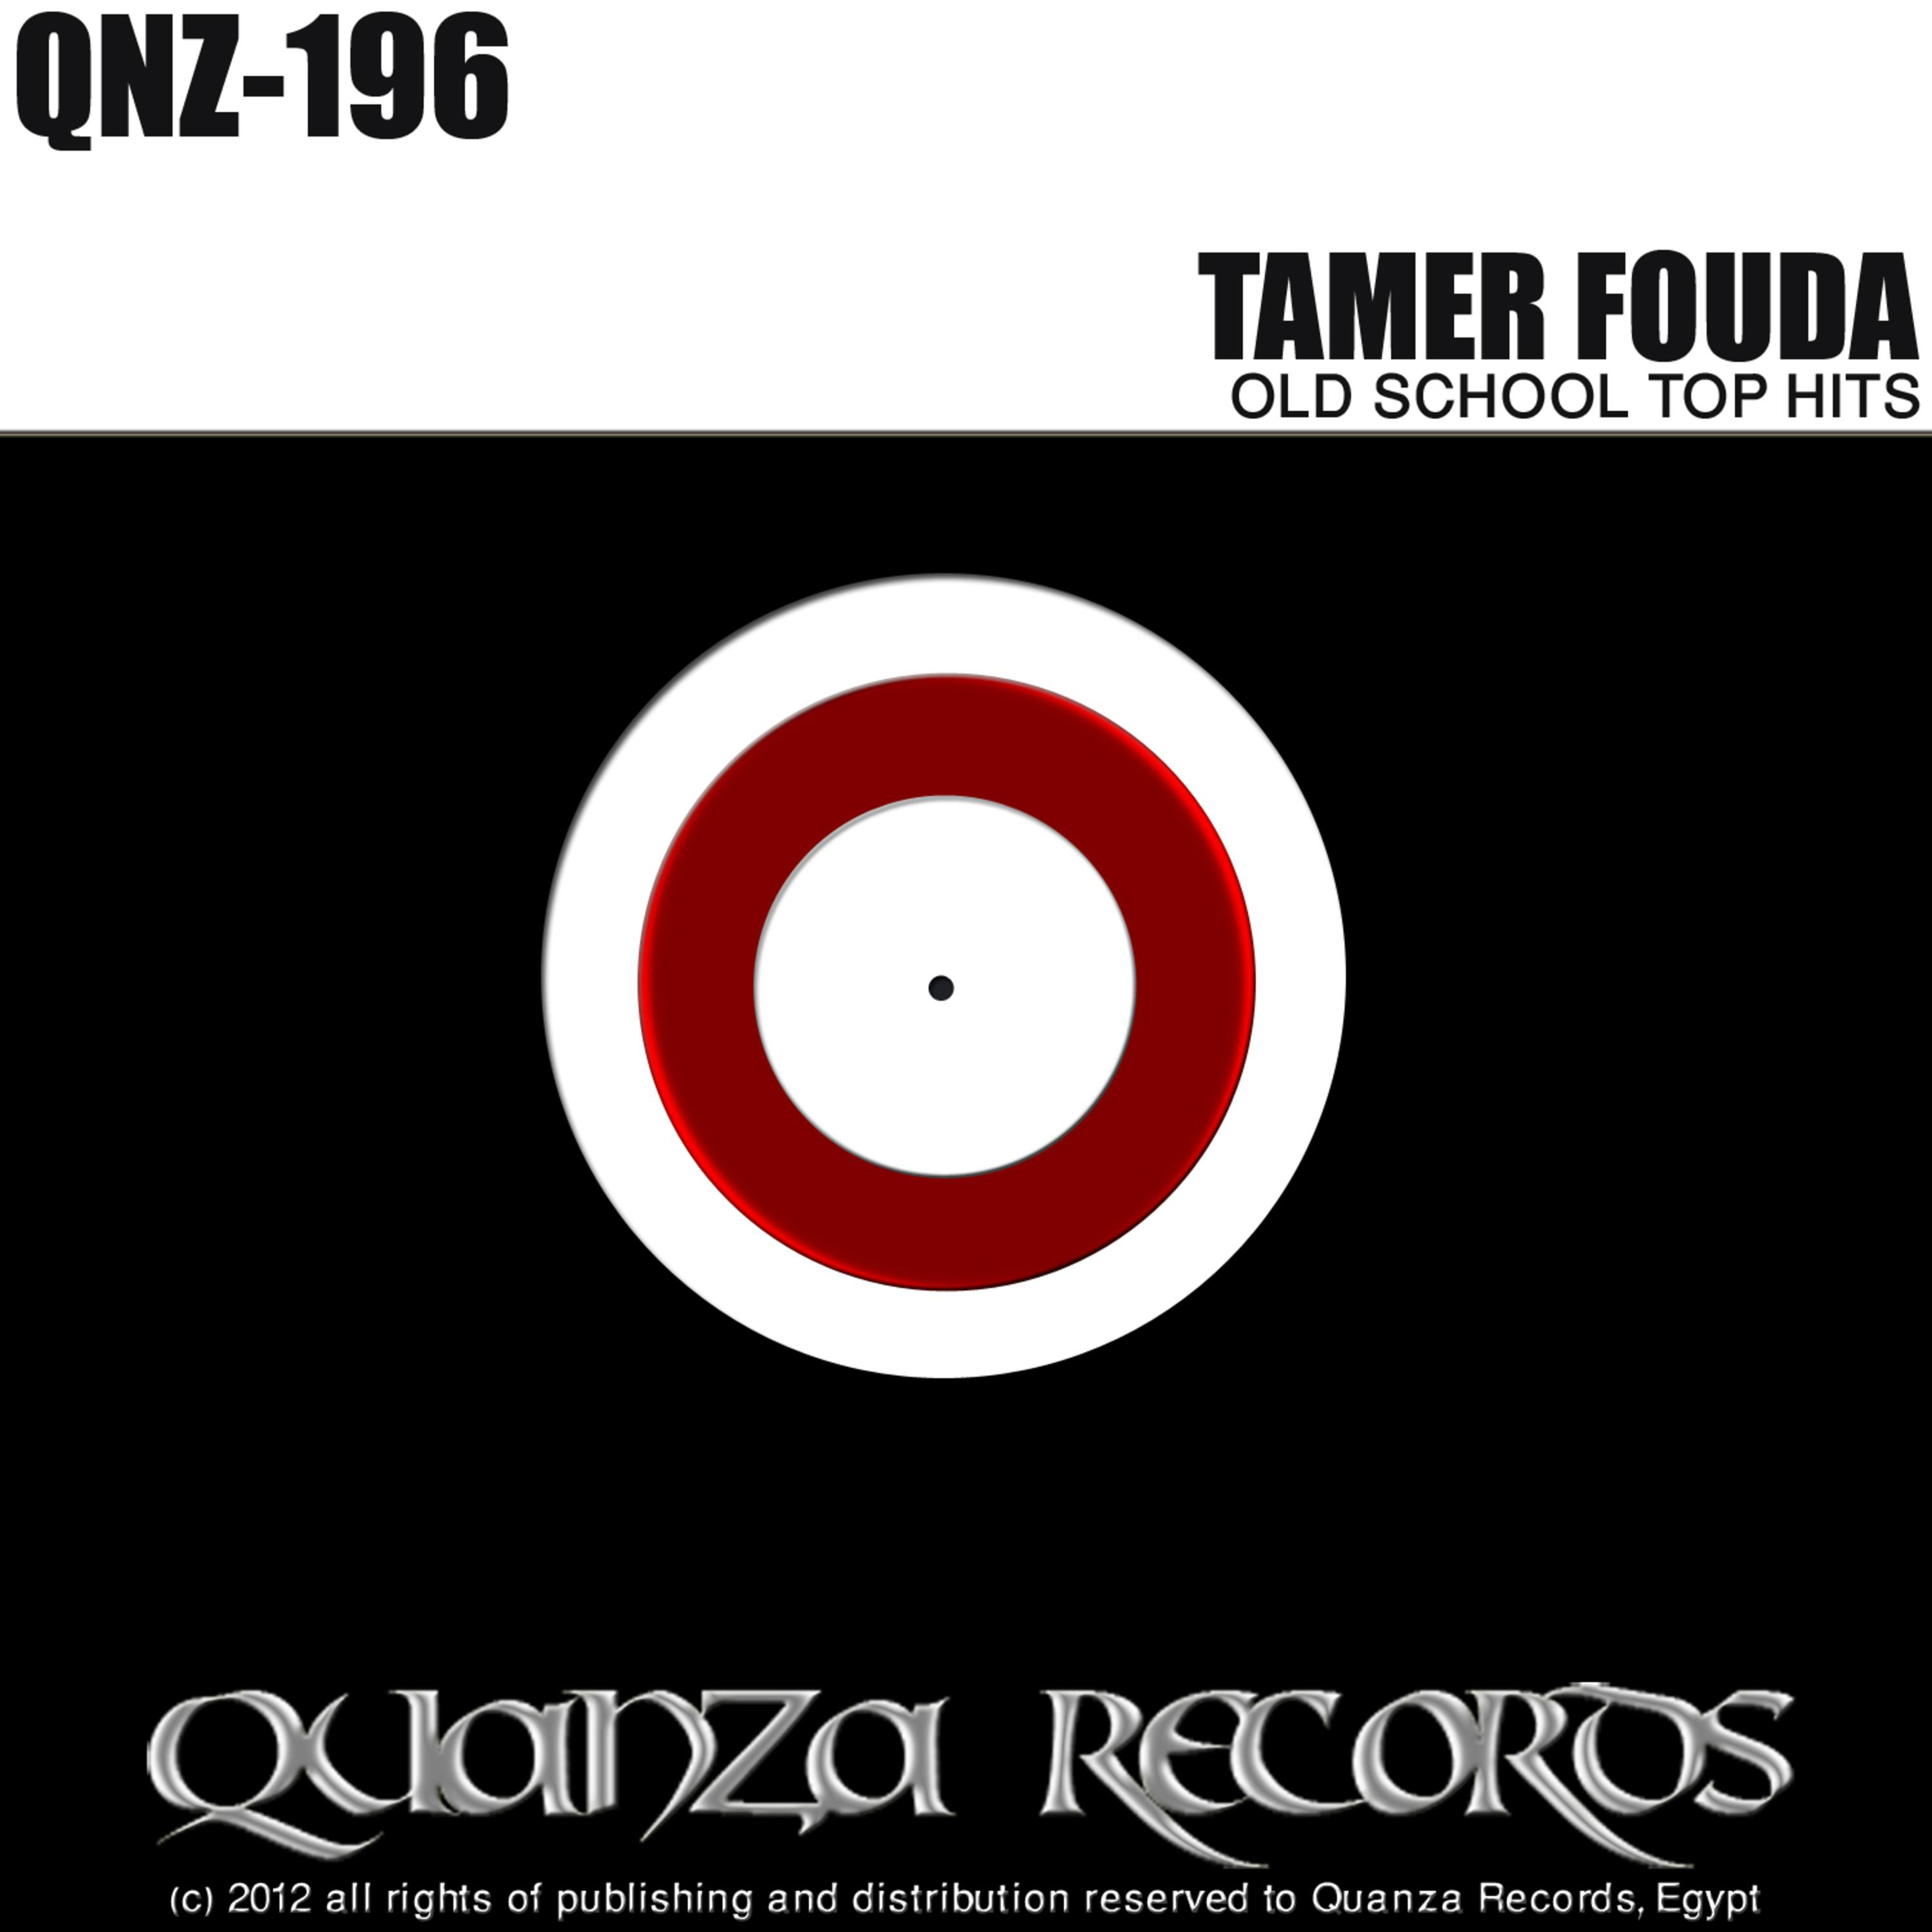 Edson Pride - Ready For This (Tamer Fouda Remix)